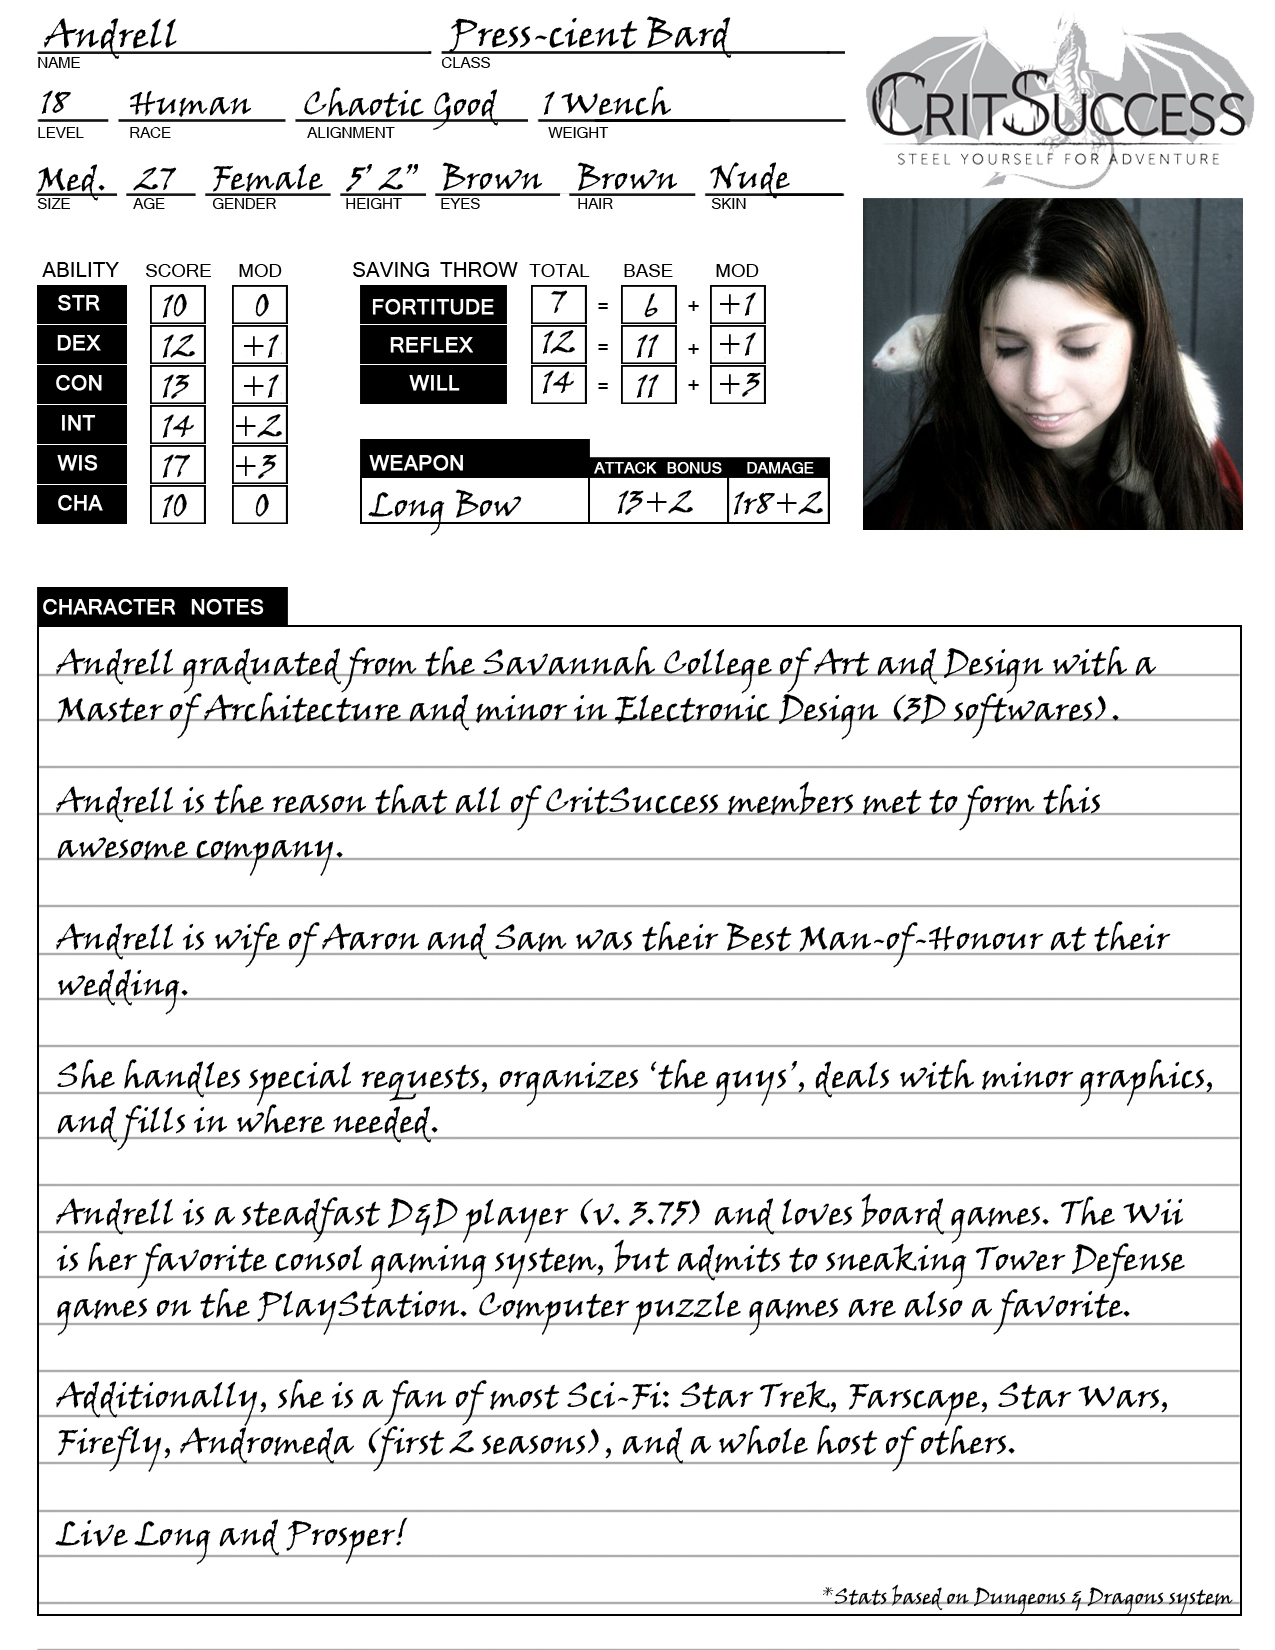 Andrell's Character Sheet